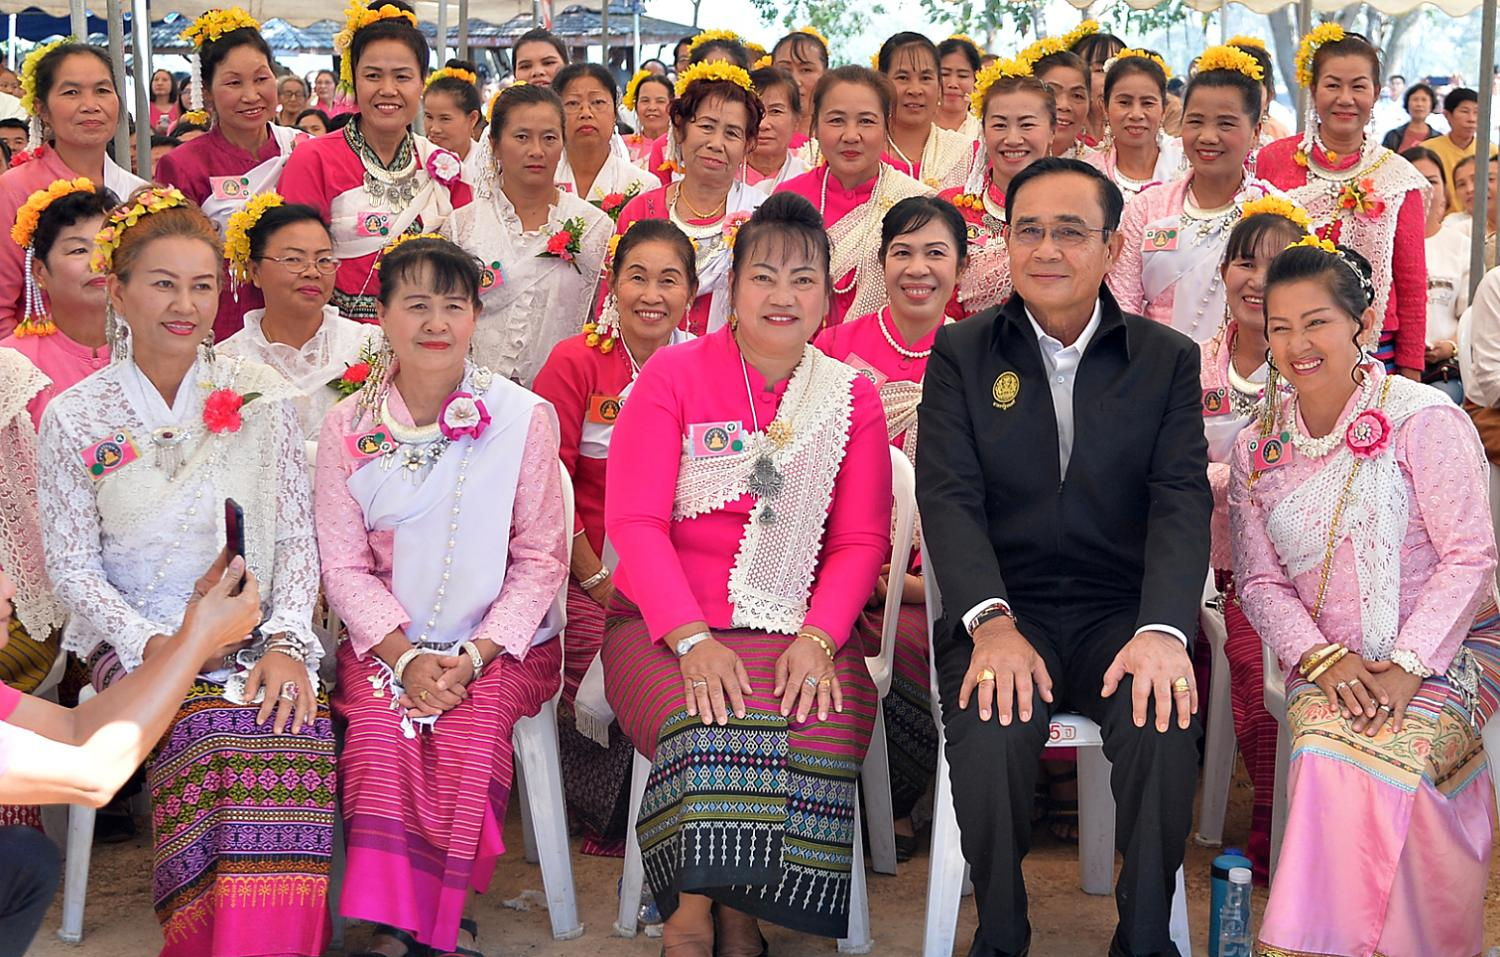 Prime Minister Prayut Chan-o-cha takes a group photo with women in traditional outfits who welcomed him to the local product fair in Phayao on Wednesday.(Government House photo)